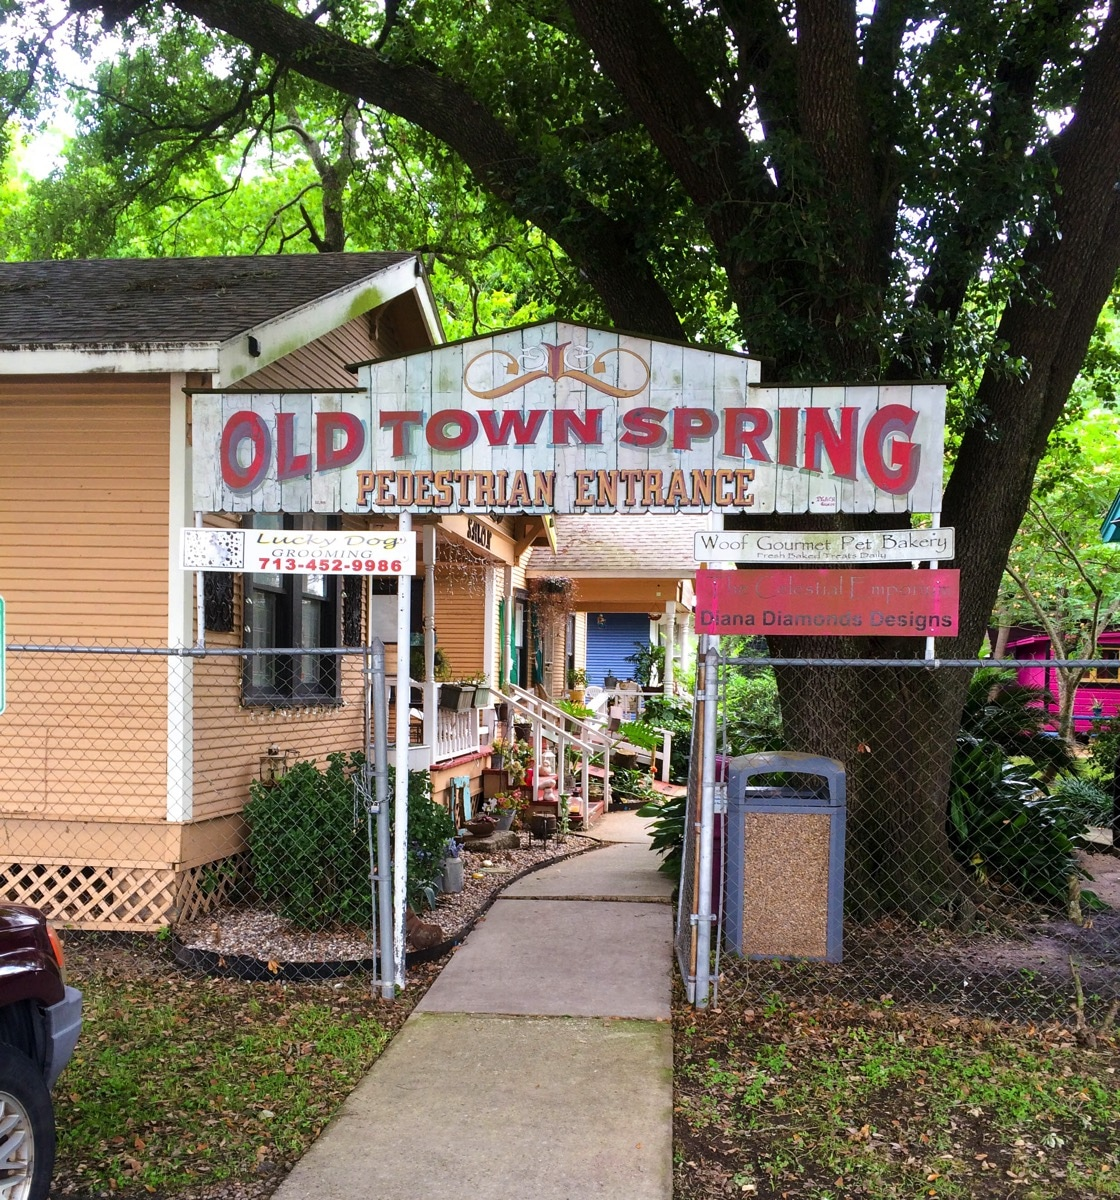 Old town spring sign